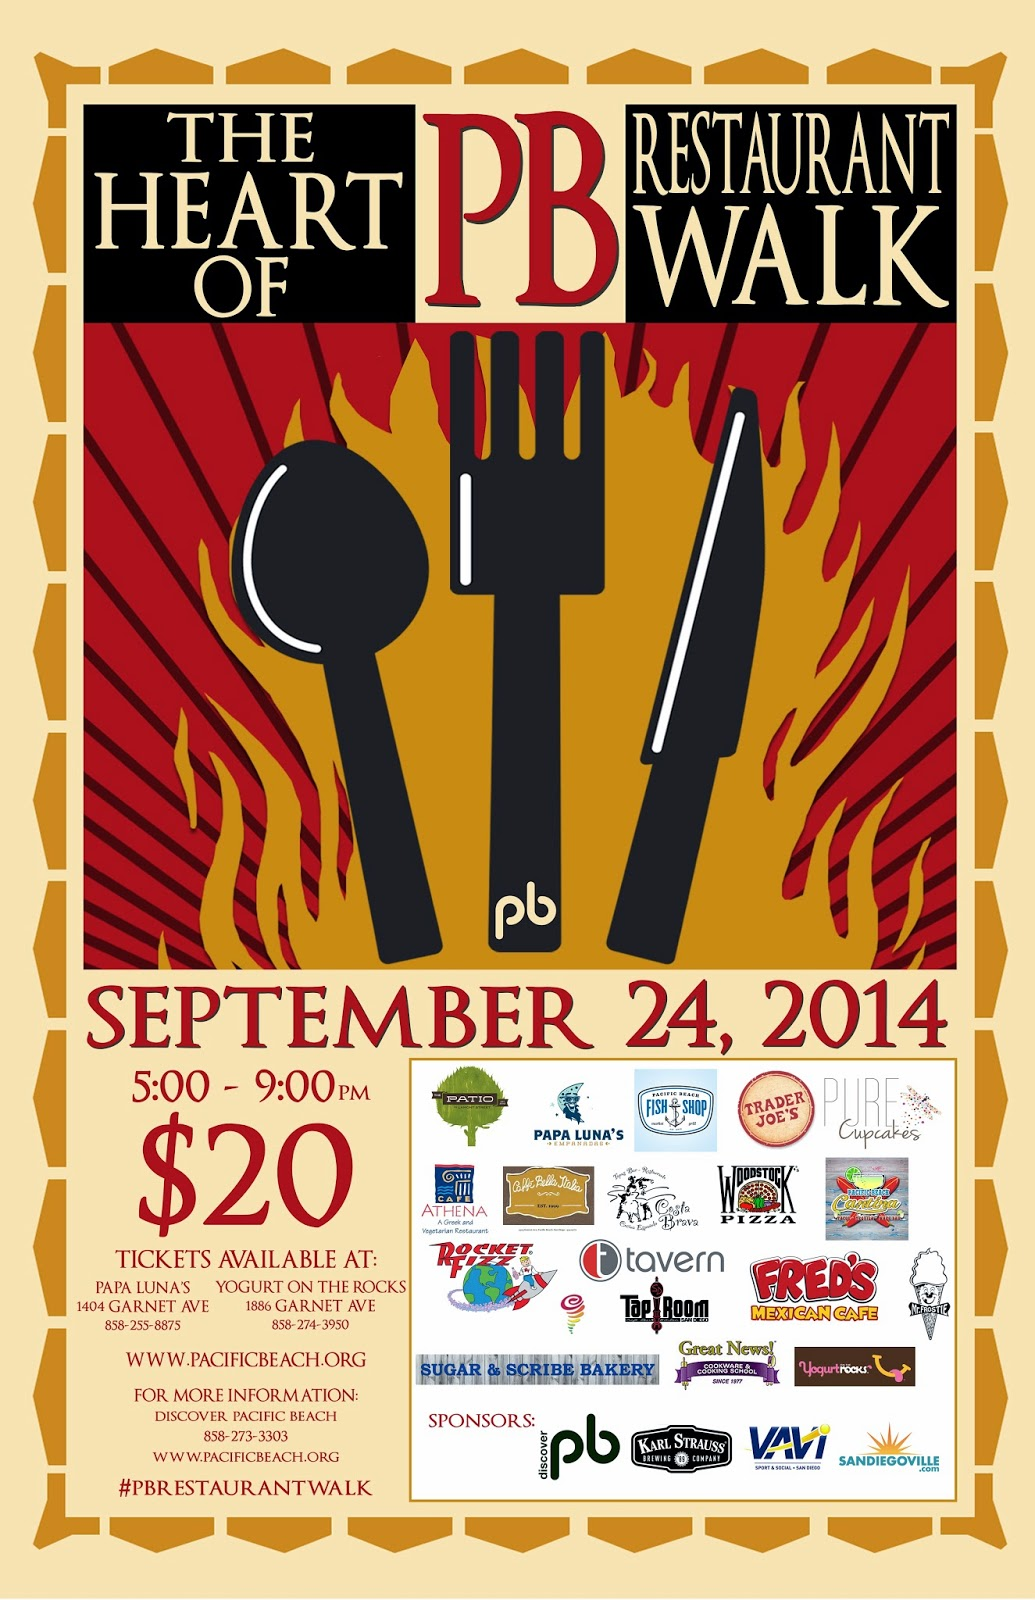 Win Tickets To The Heart Of Pacific Beach Restaurant Walk And Craft Beer Tasting Wednesday September 24th From 5 9pm